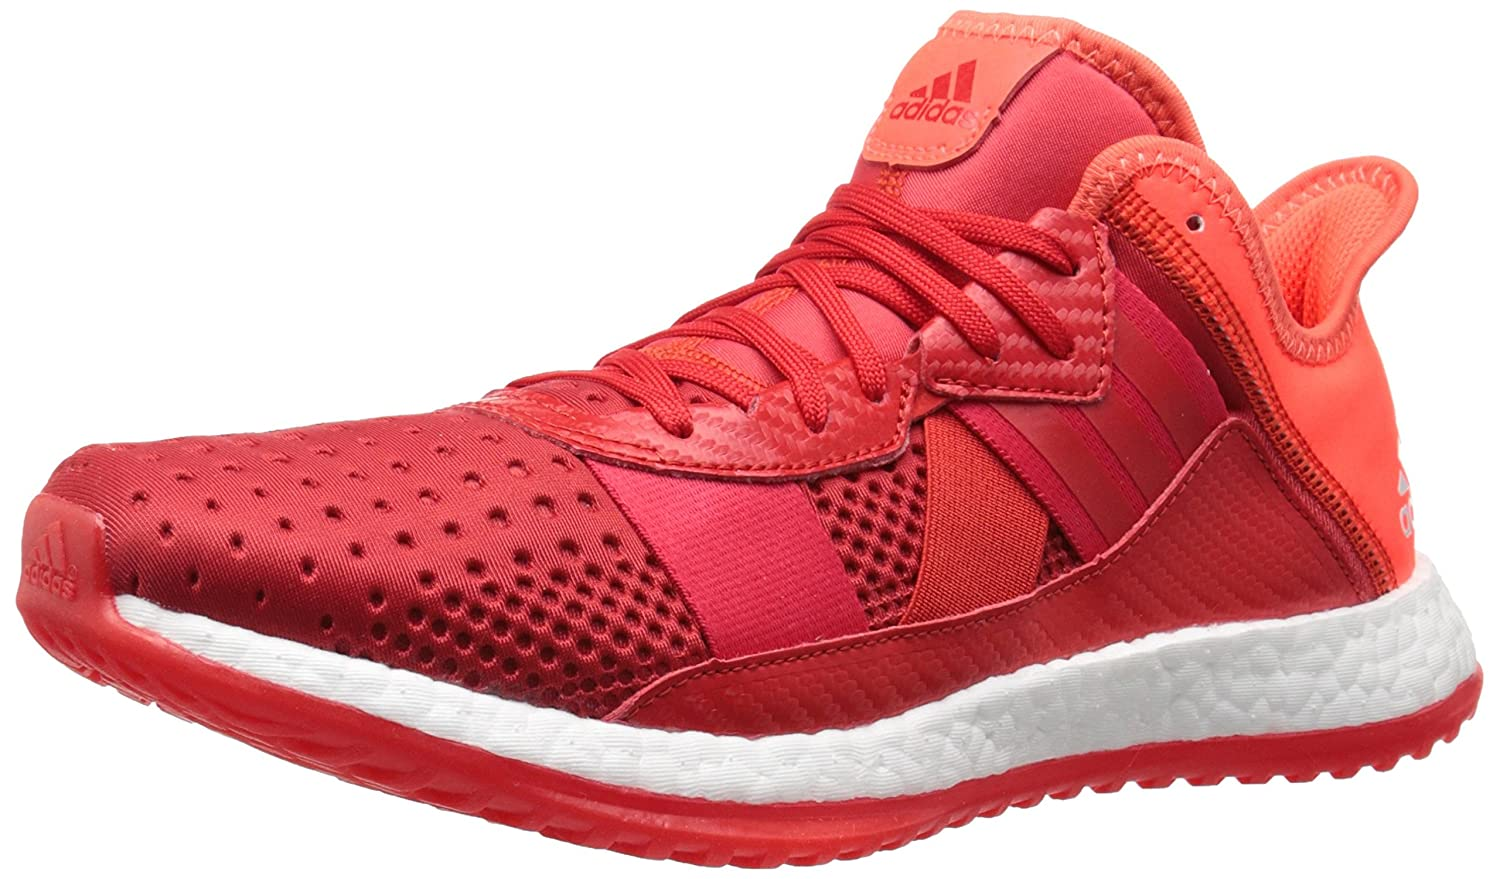 adidas Men's Pure Boost ZG Trainer Training Shoe B0111QYJGM 9.5 D(M) US|Vivid Red/White/Solar Red